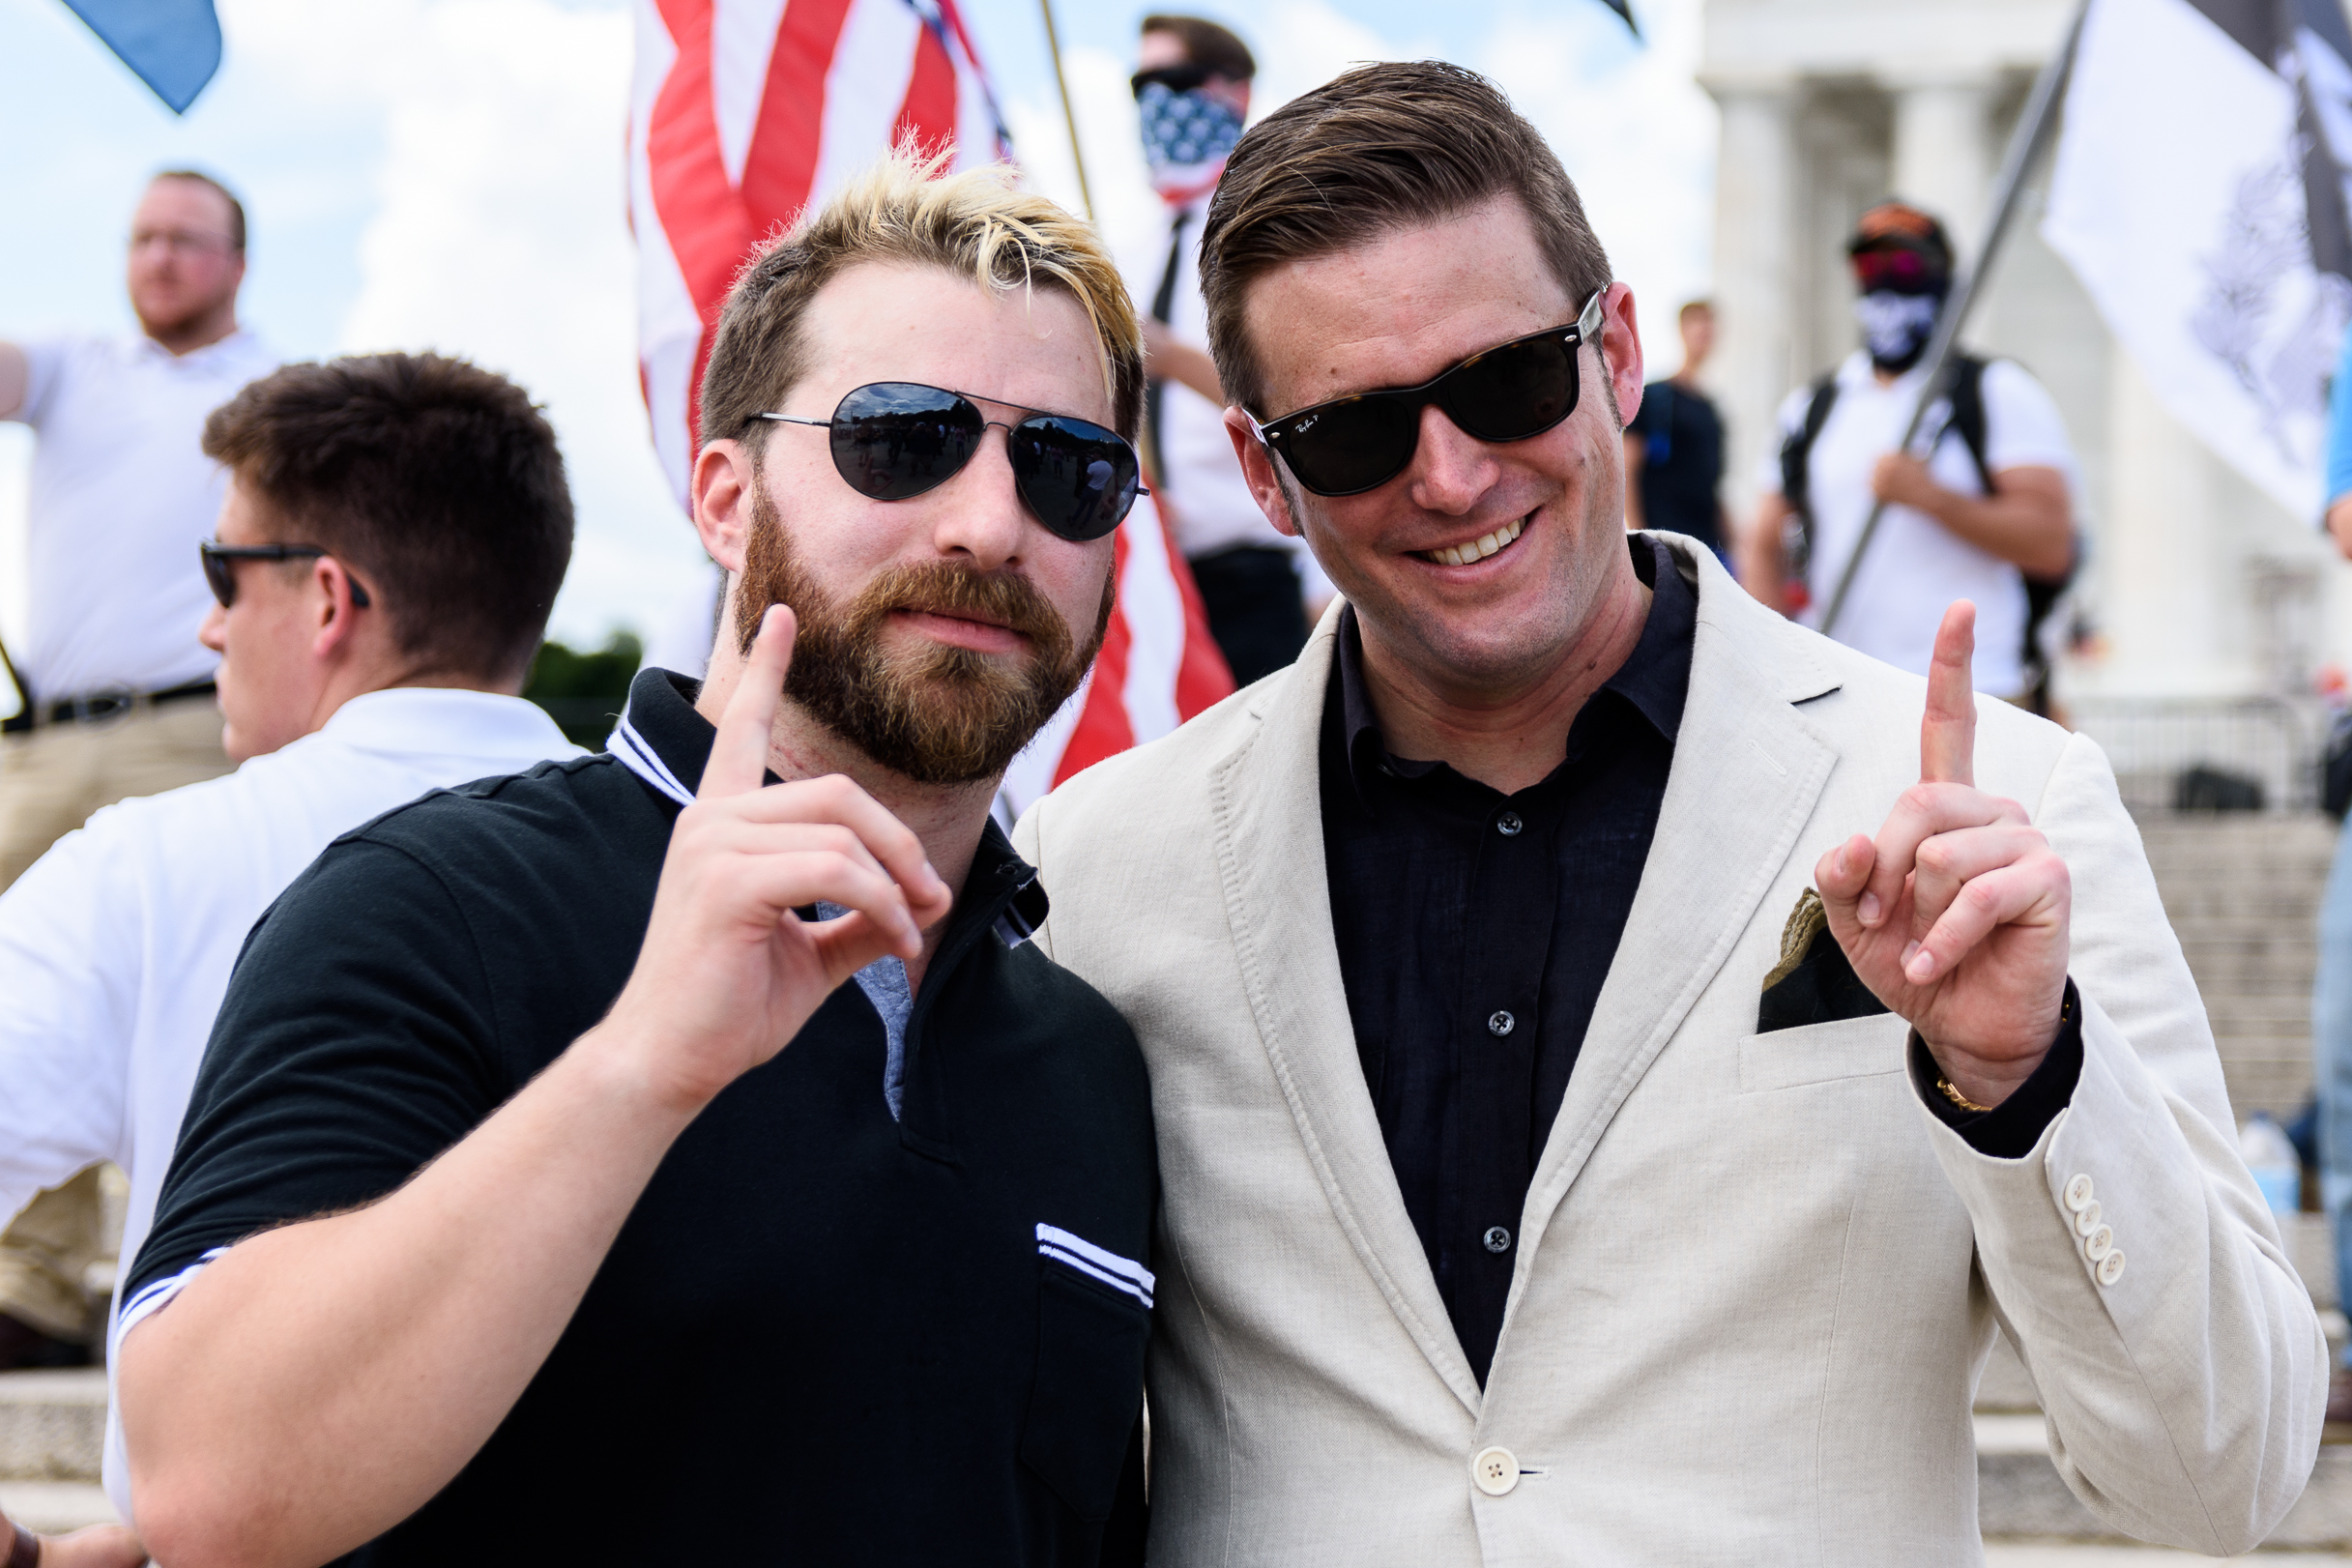 """Tim """"Baked Alaska"""" Gionet, left, poses for a photo with white nationalist Richard Spencer, right."""